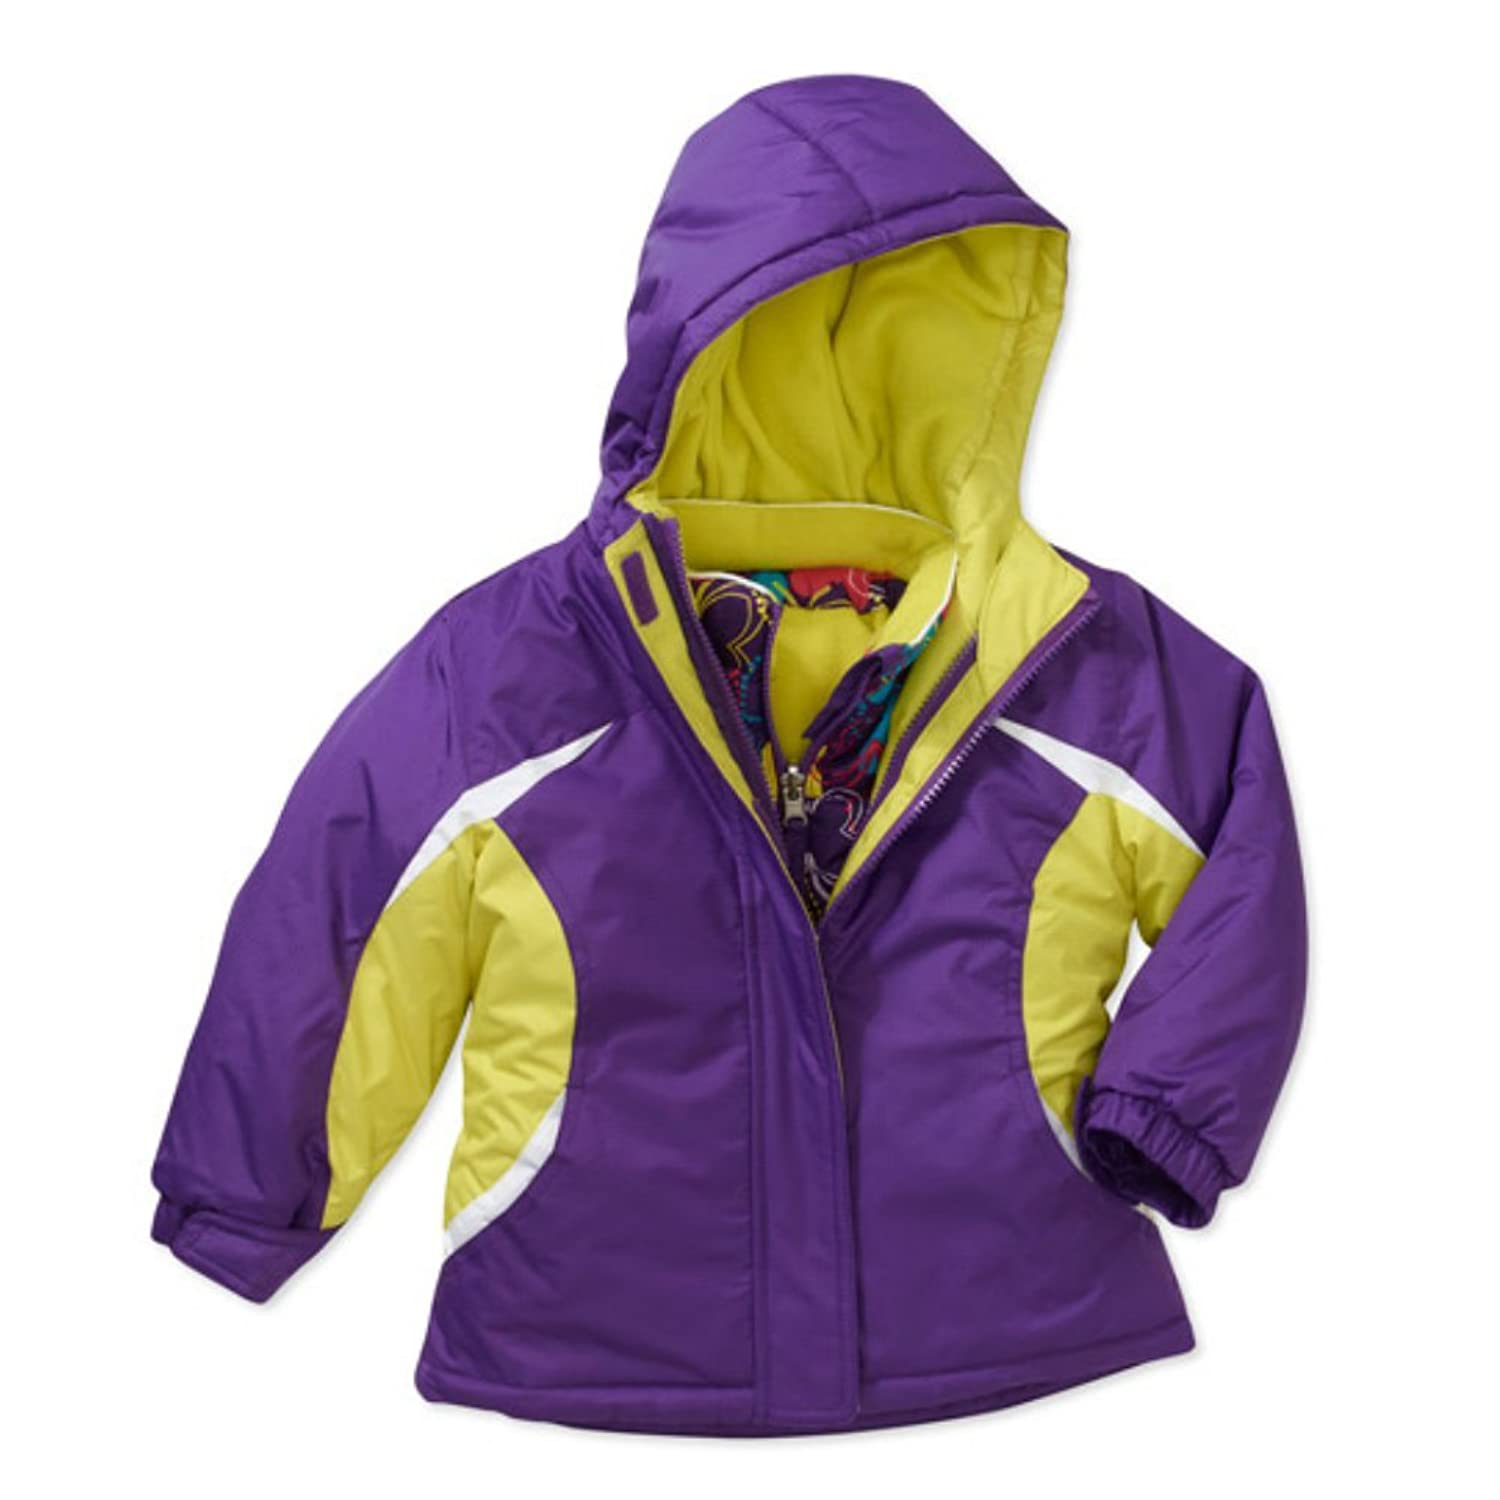 Amazon.com: Healthtex Infant Toddler Girl Purple 3 in 1 Winter ...